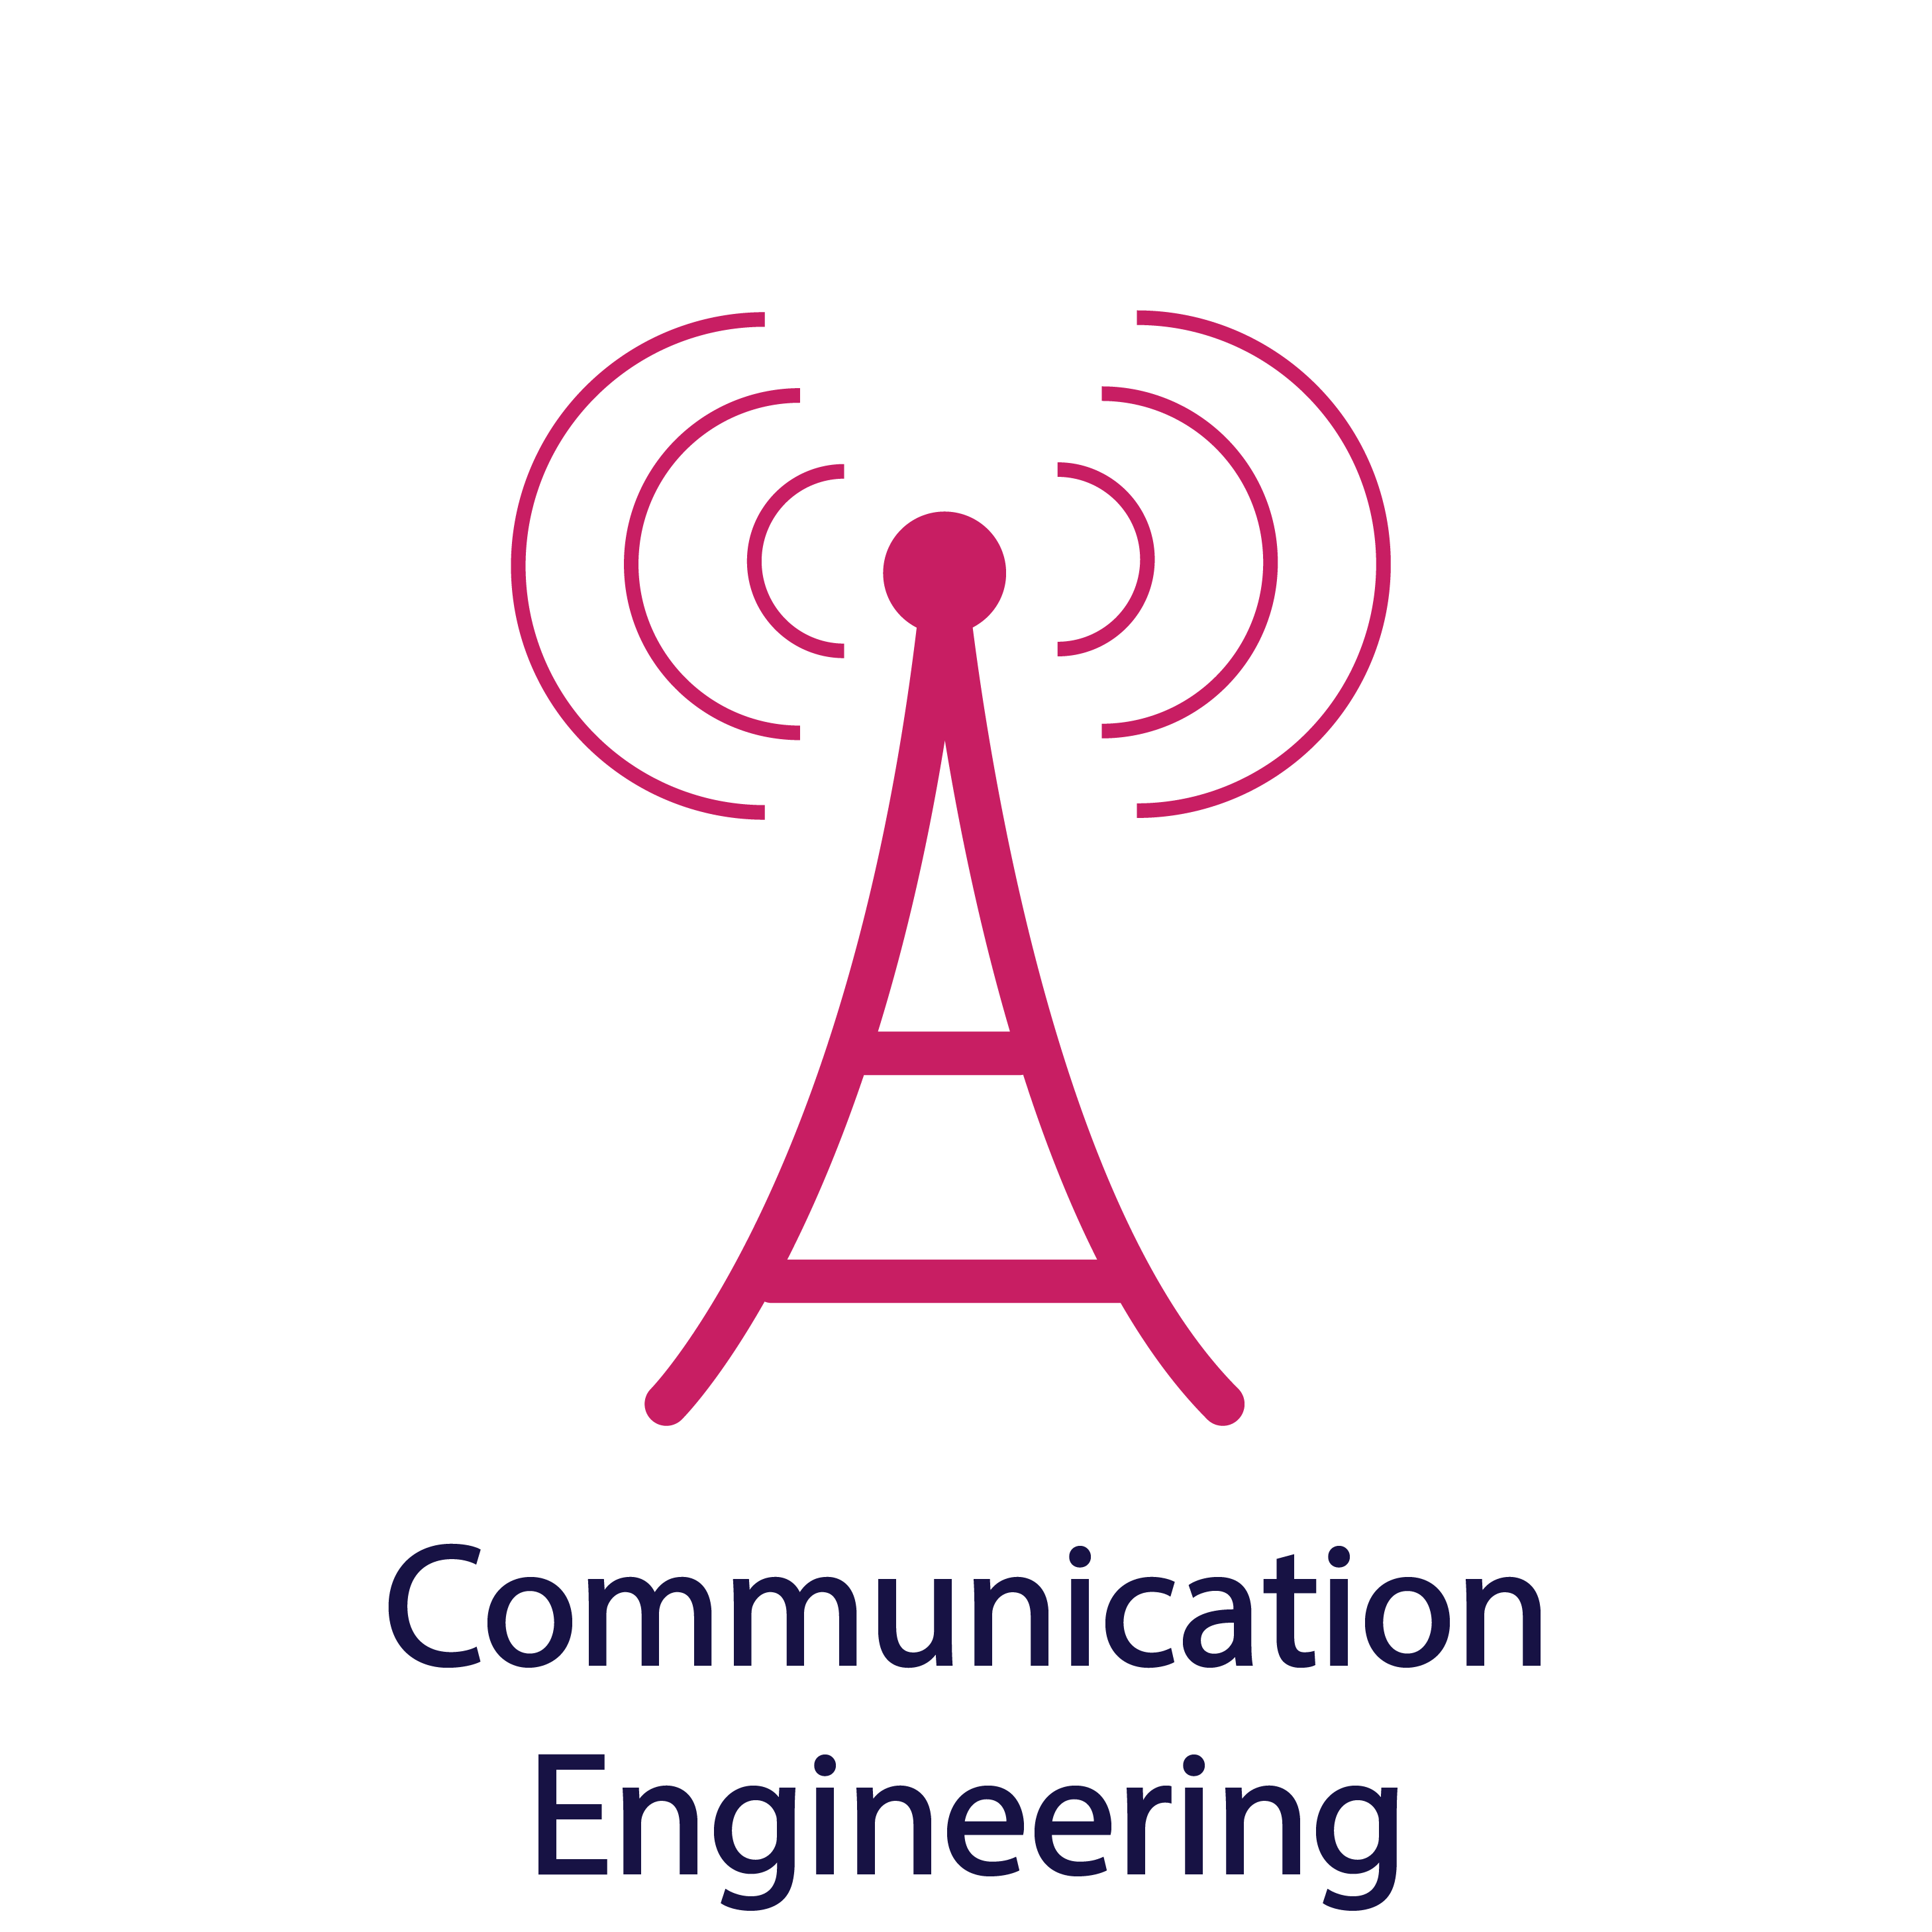 Engineering clipart communication engineering. Bachelor s degree in